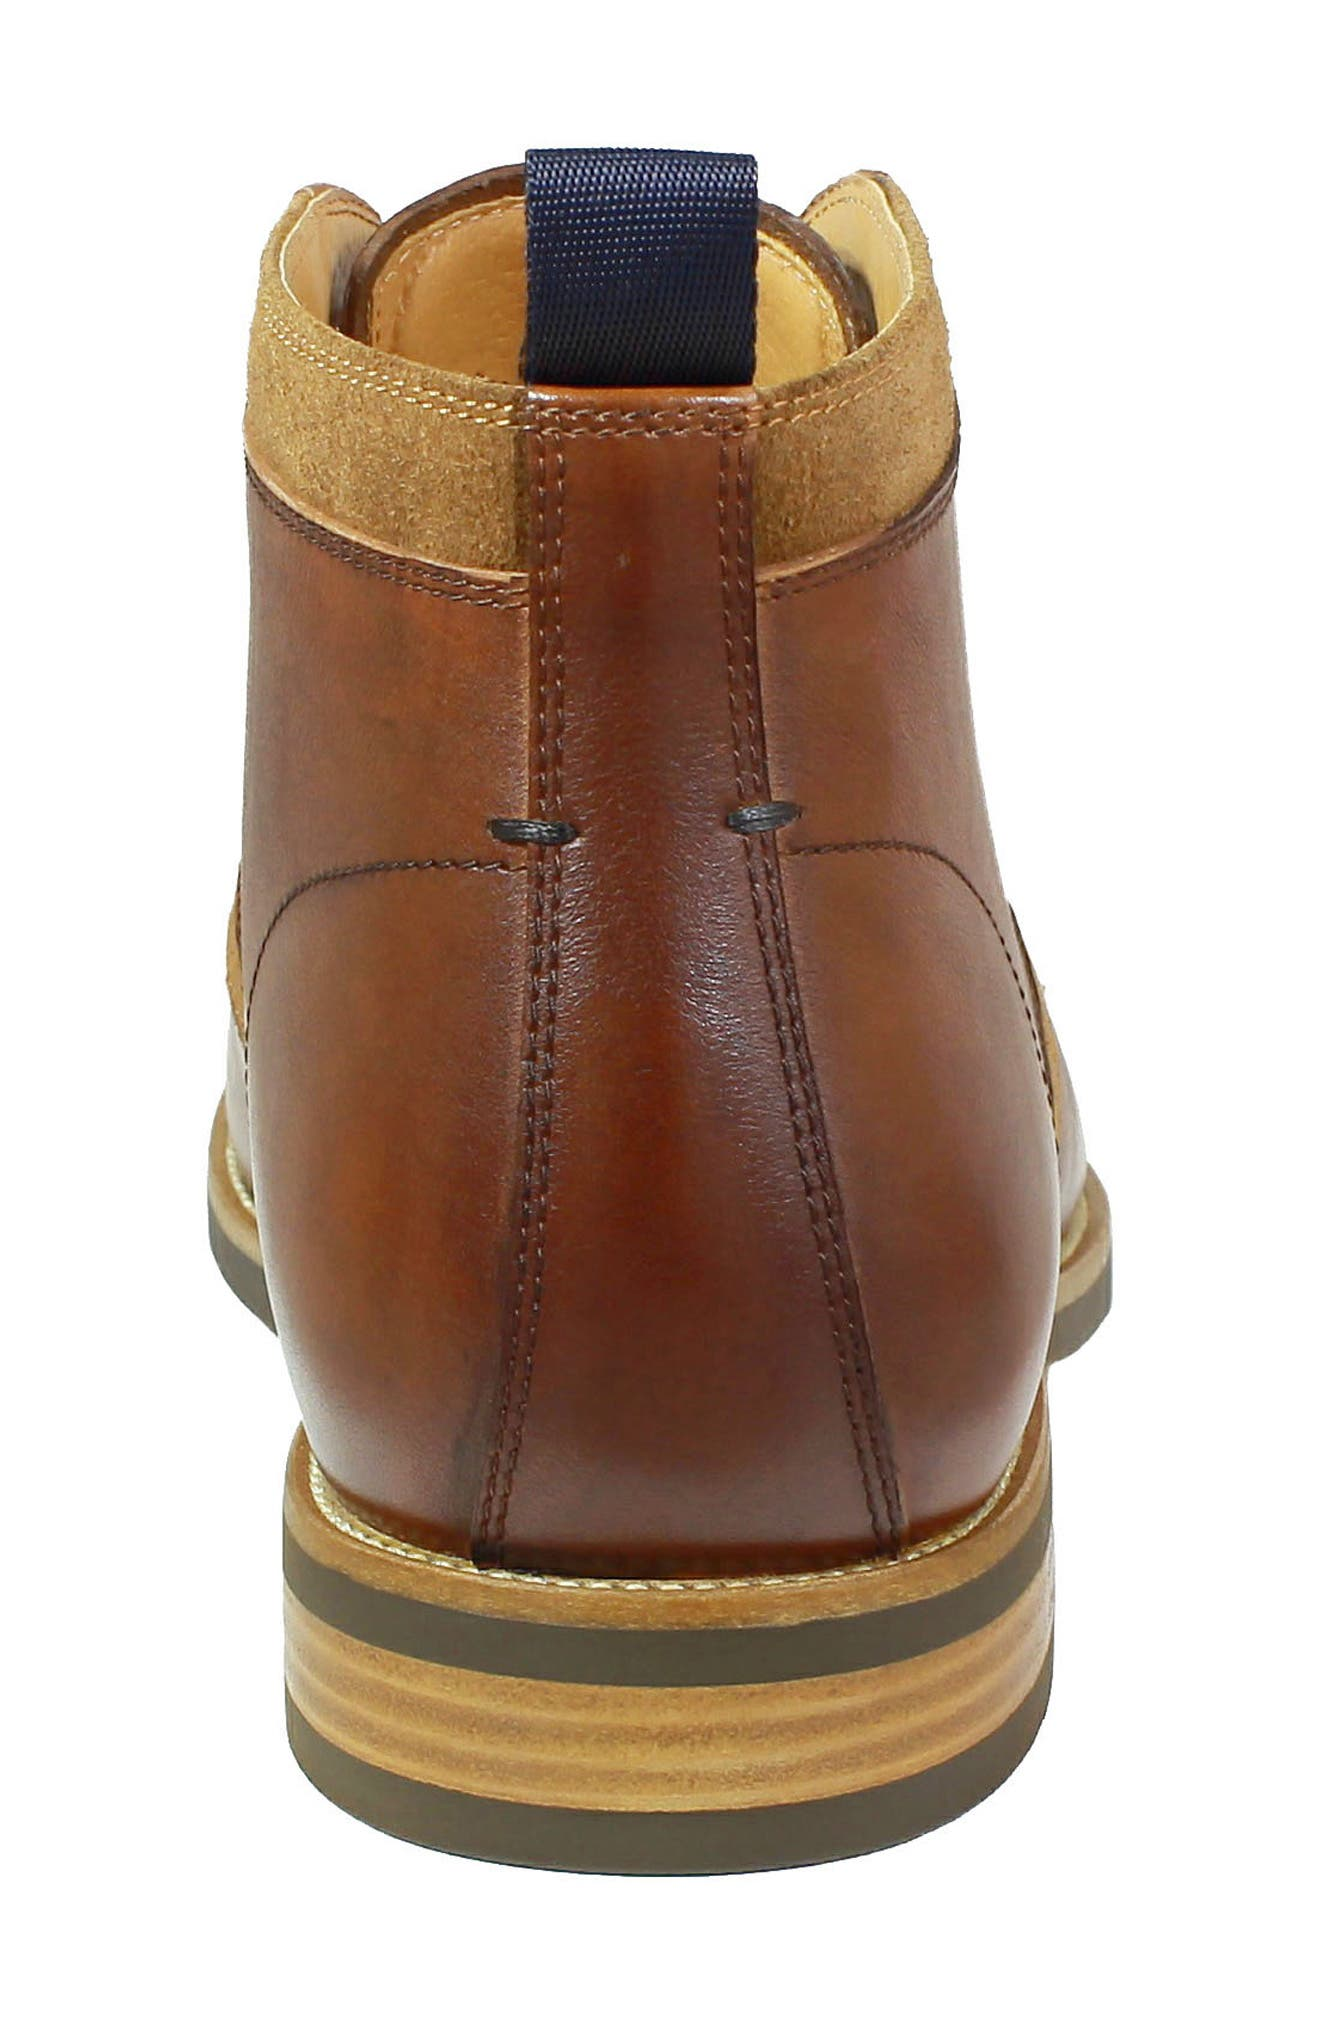 Uptown Chukka Boot,                             Alternate thumbnail 7, color,                             COGNAC LEATHER